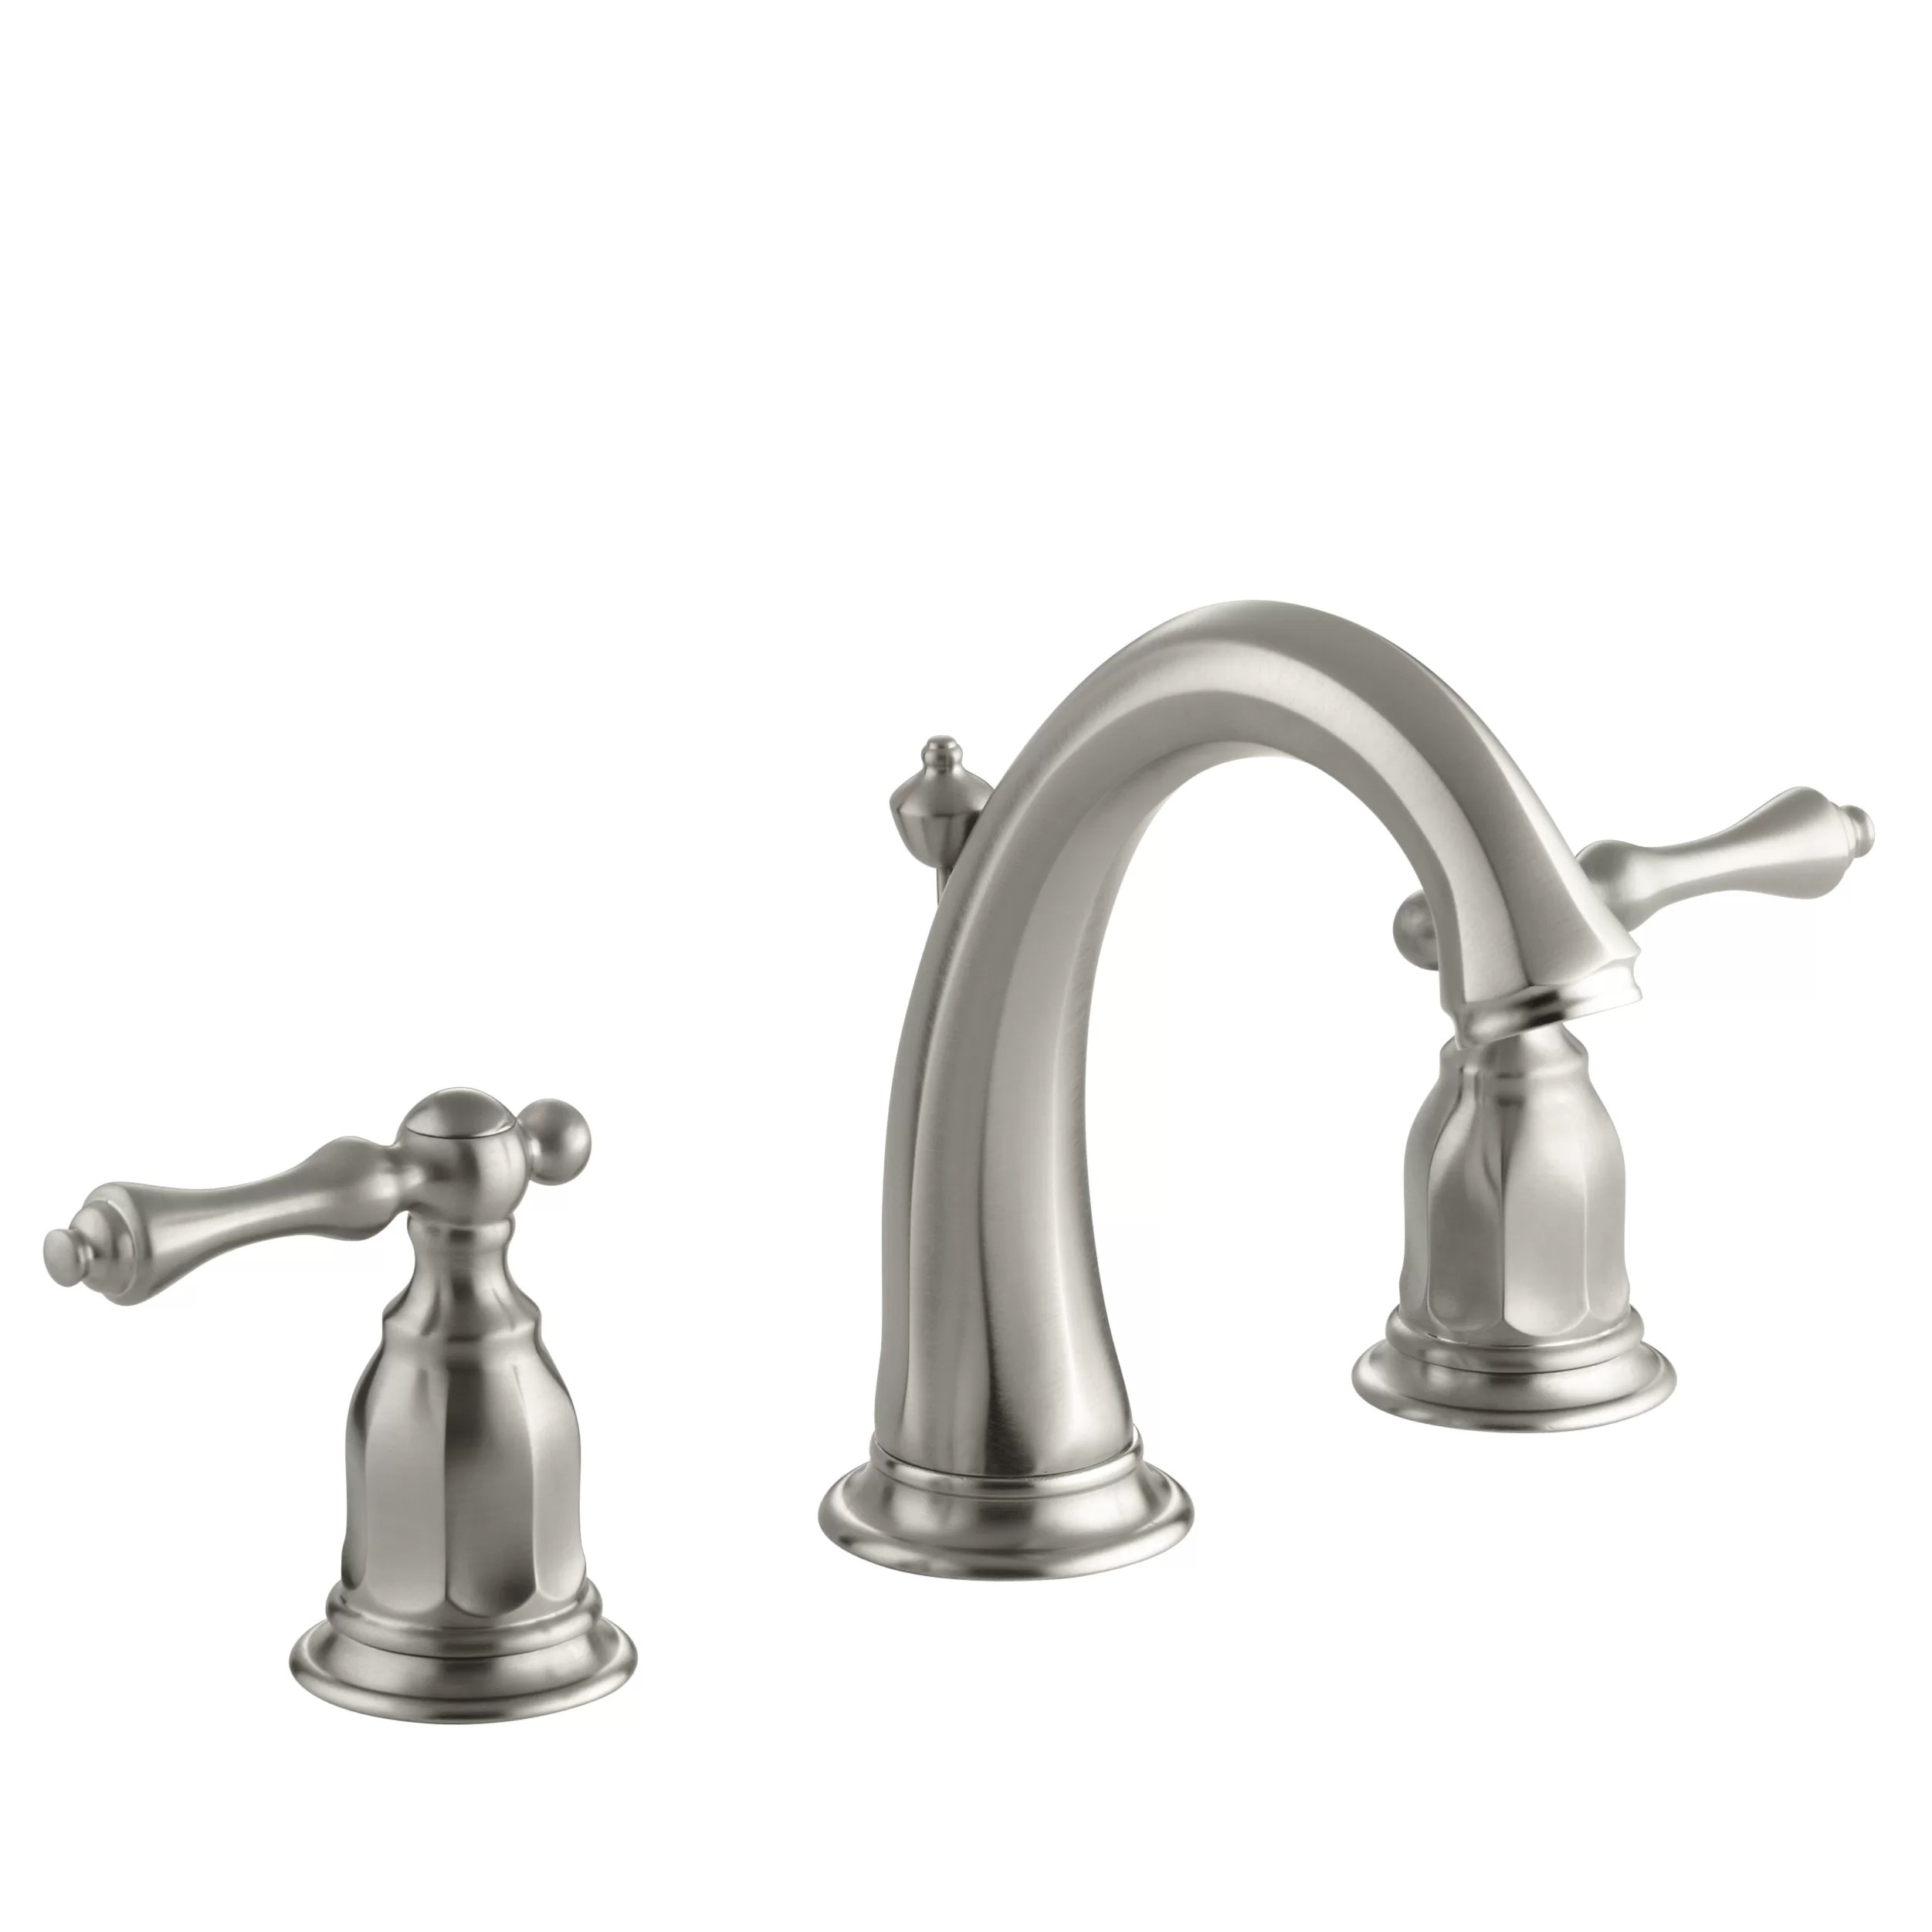 Kohler Kelston Widespread Bathroom Sink Faucet  Reviews  Wayfair